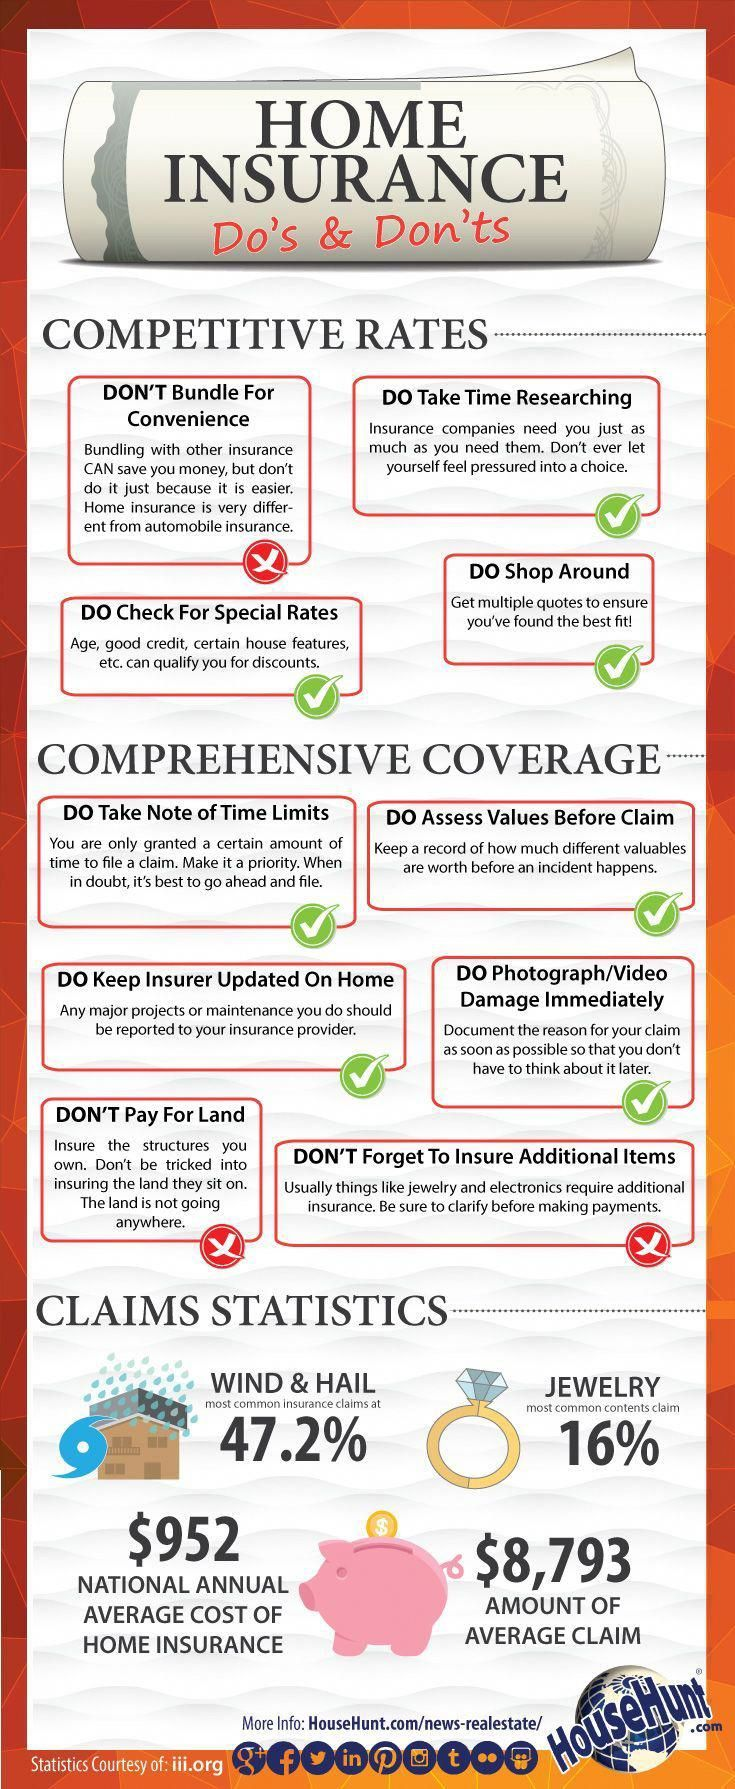 Car Insurance Coverage How Much Should You Get Home Insurance